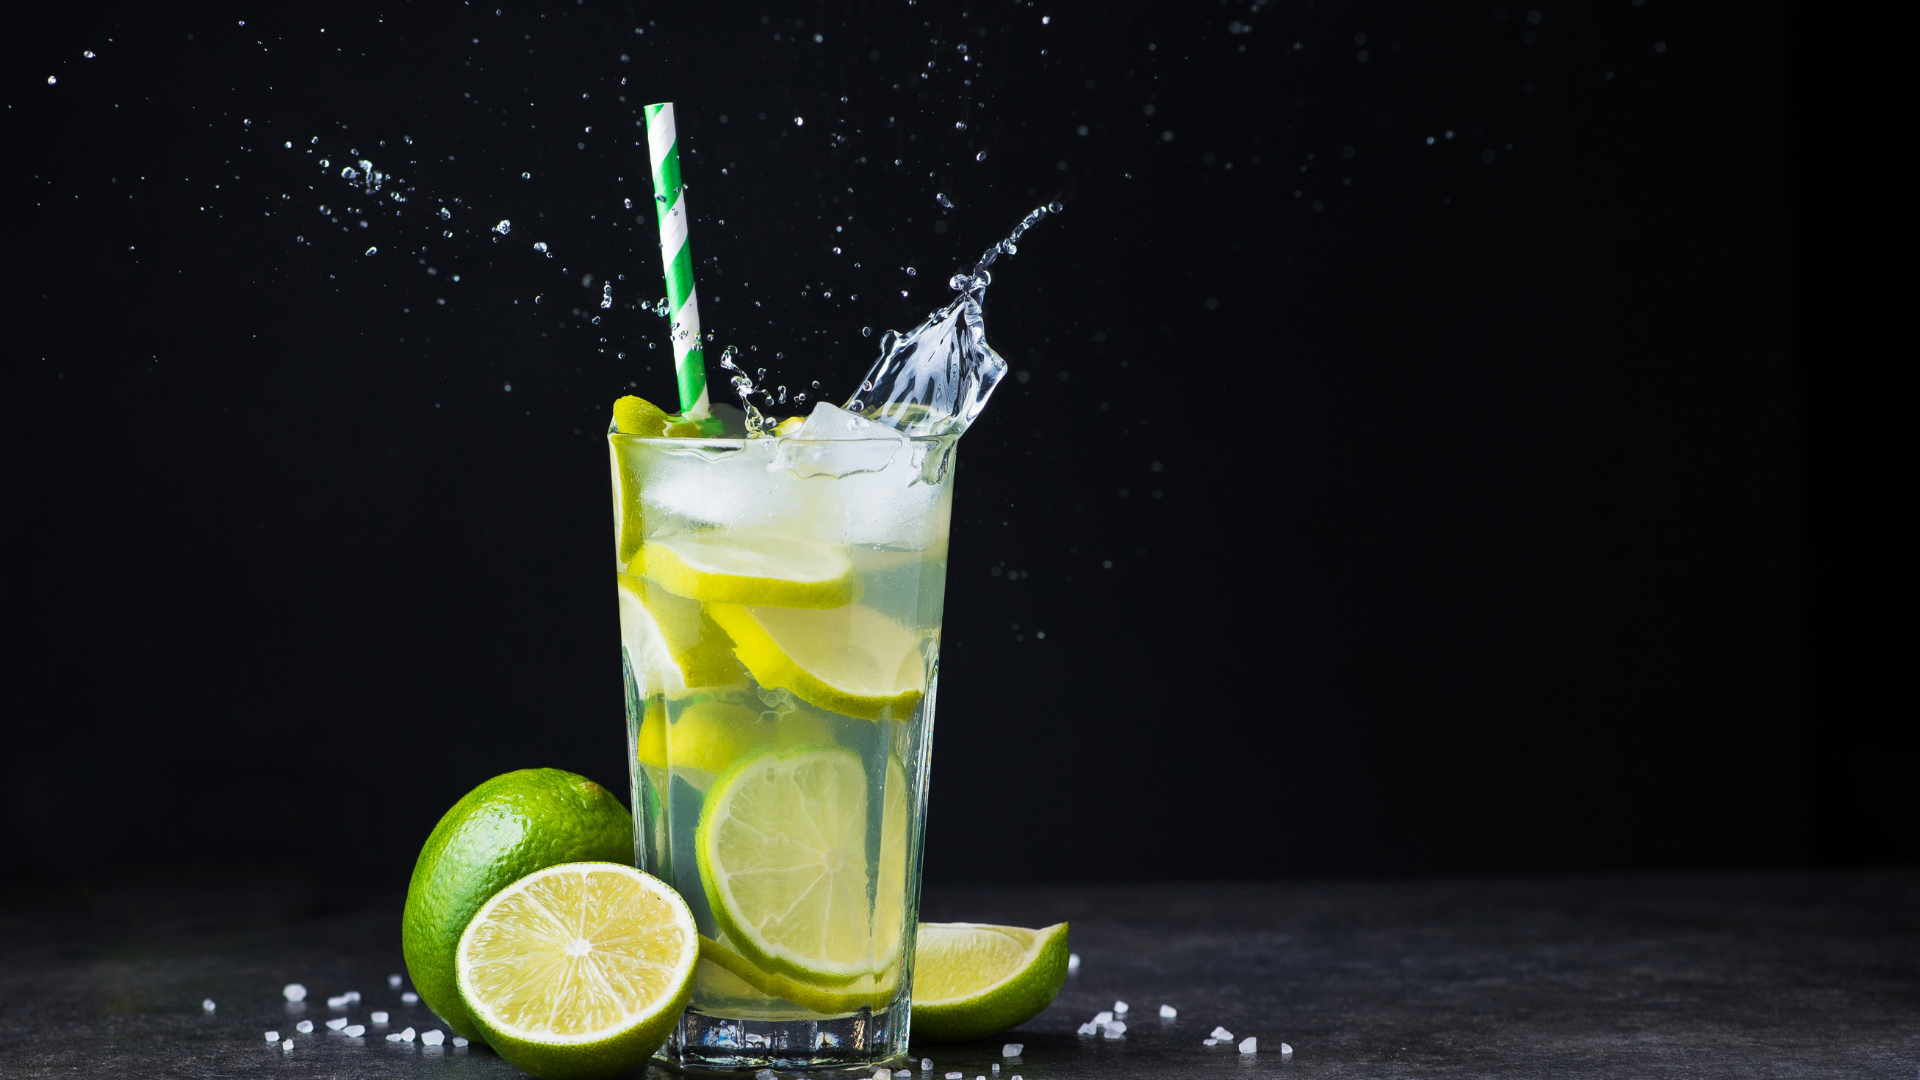 The Authentic Brazilian Caipirinha